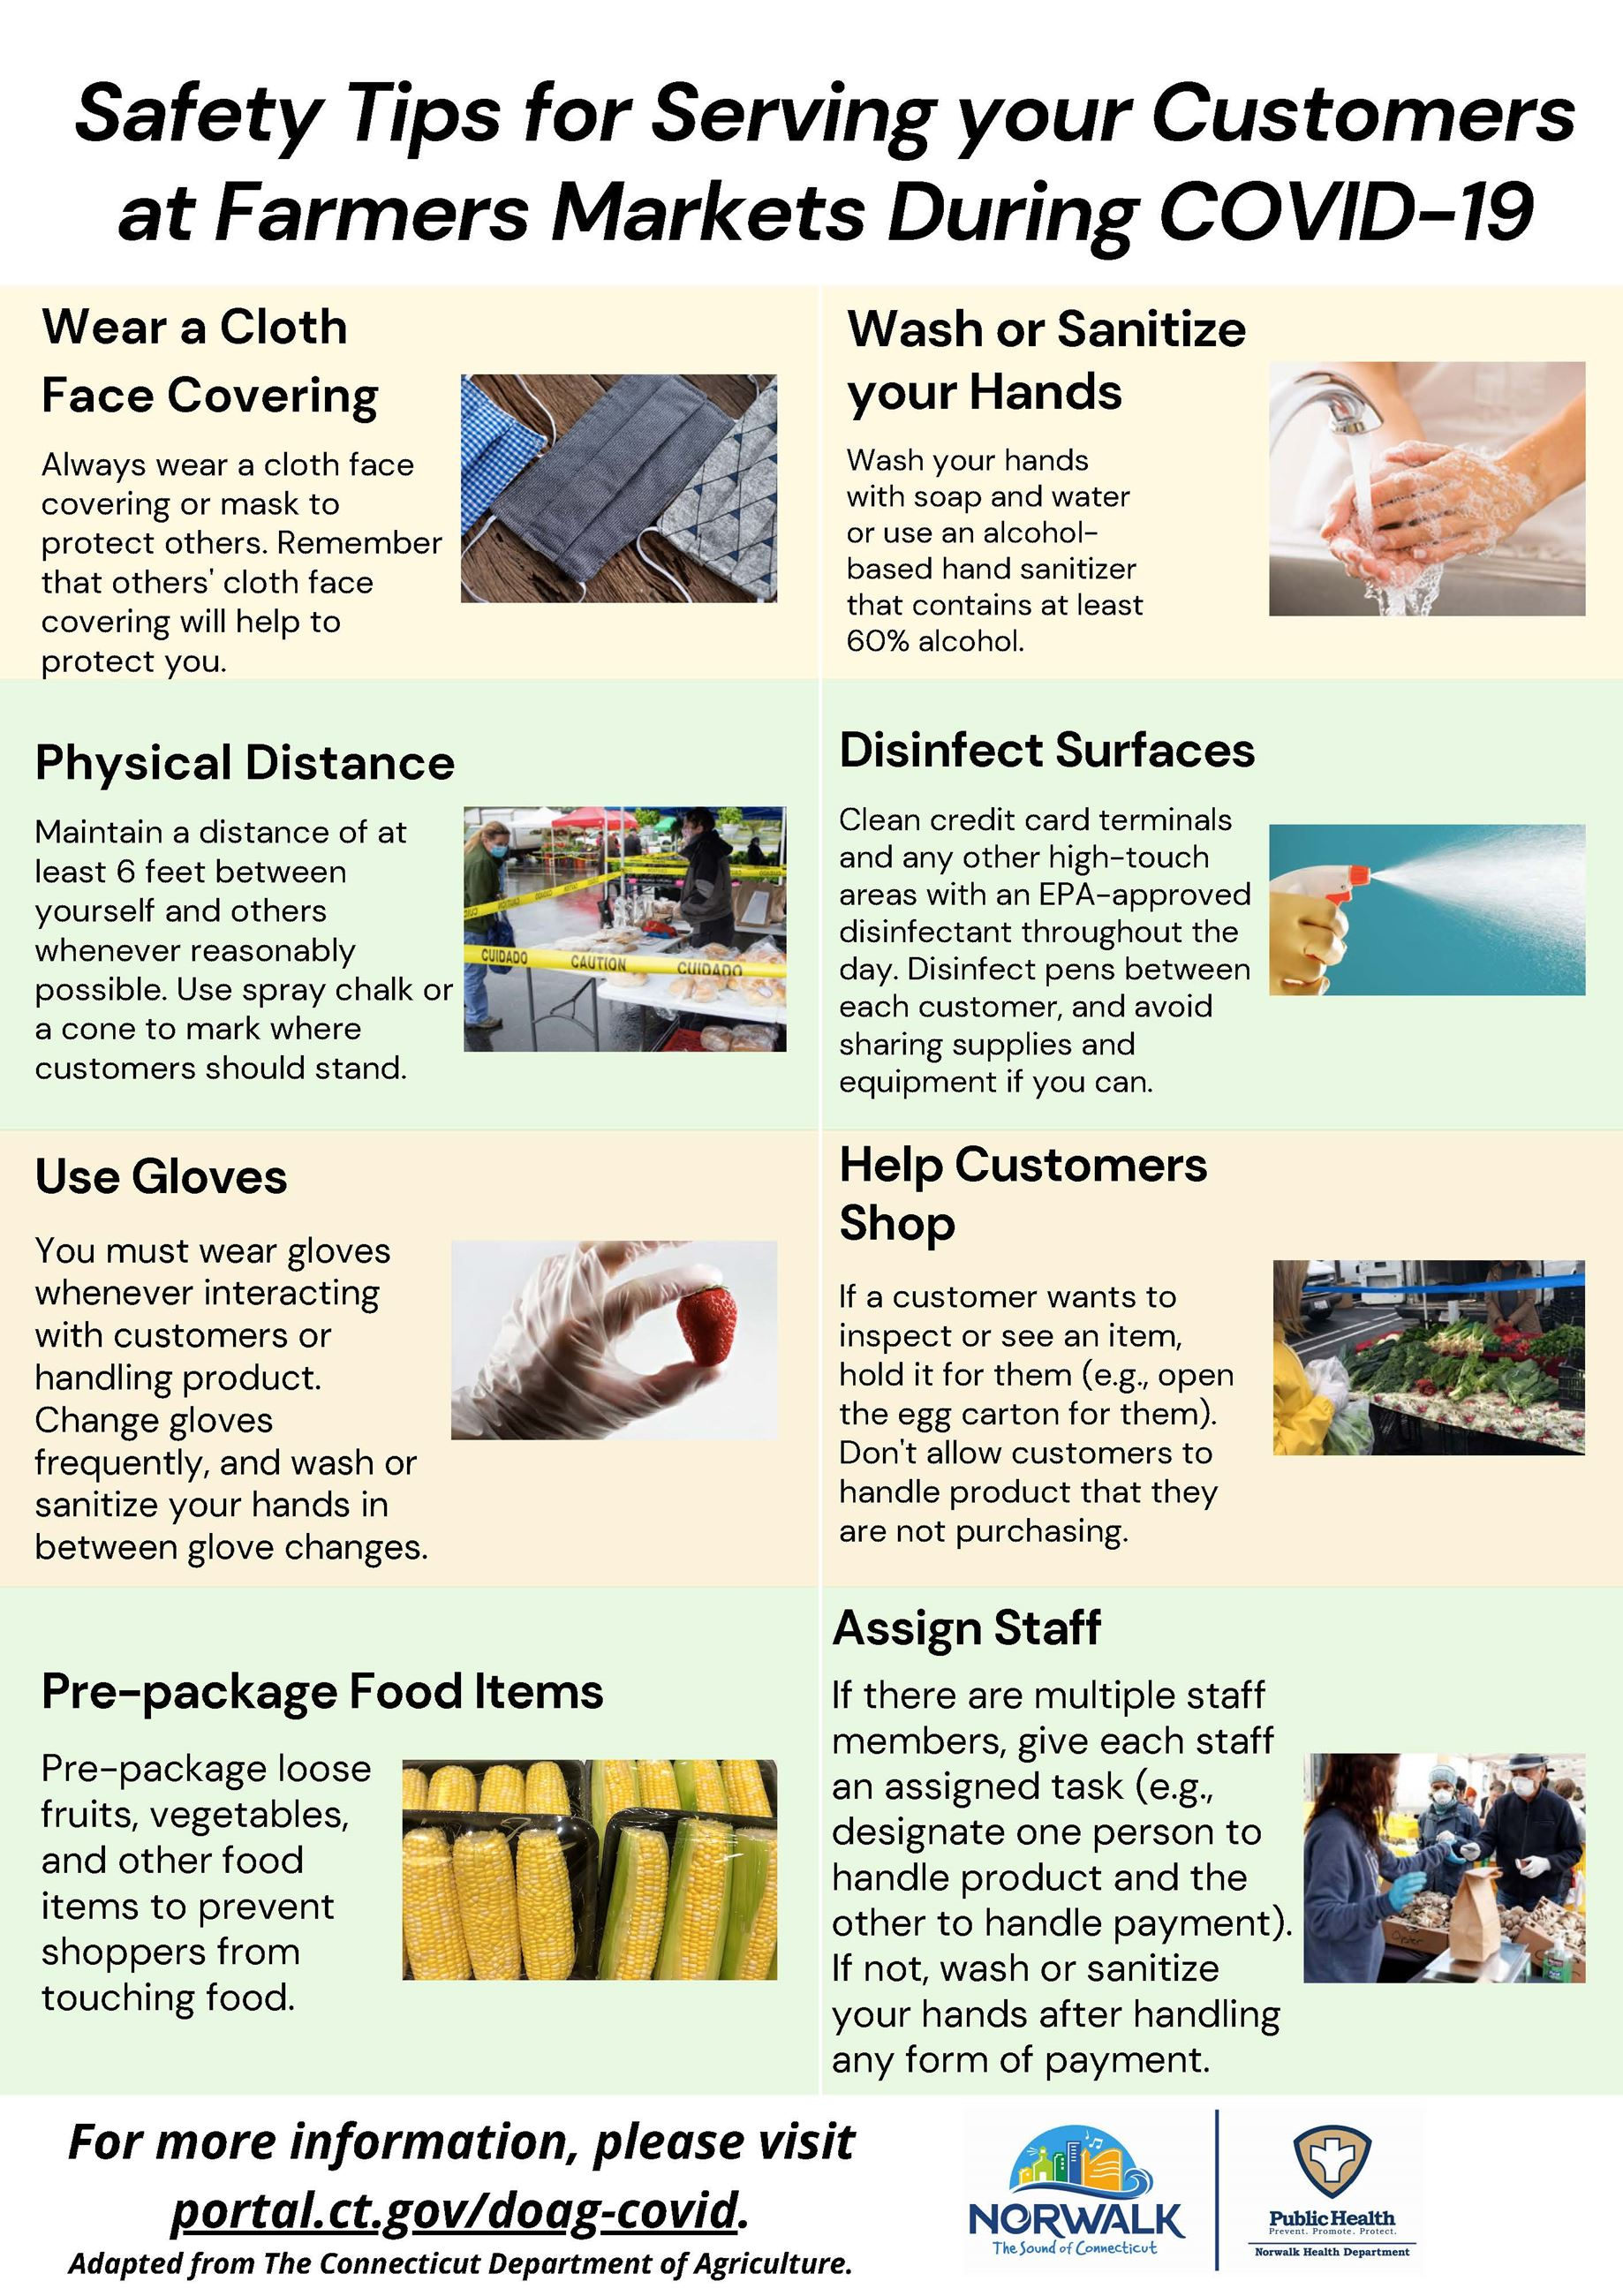 Safety Tips for Serving Customers During COVID-19_English